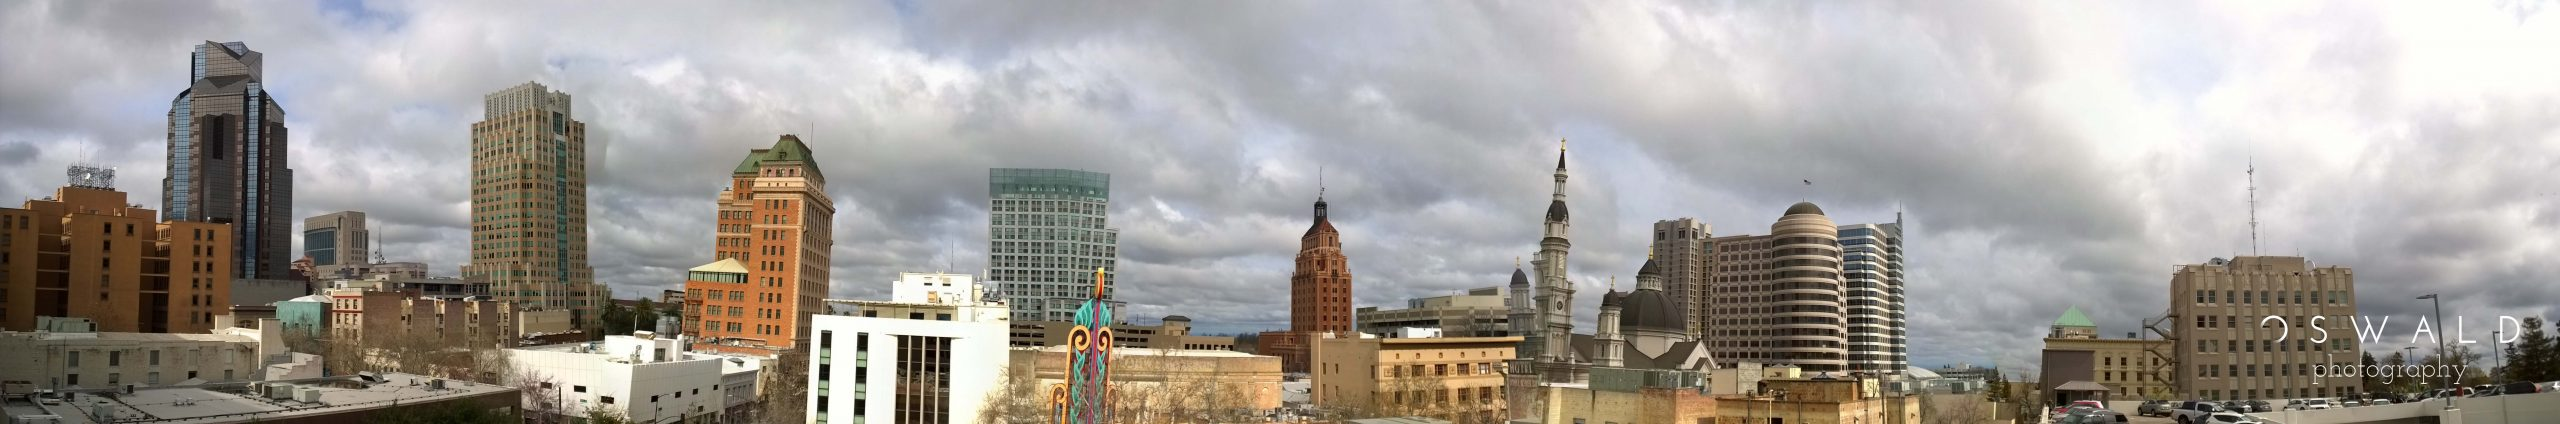 Crooked Panorama of Buildings in Downtown Sacramento